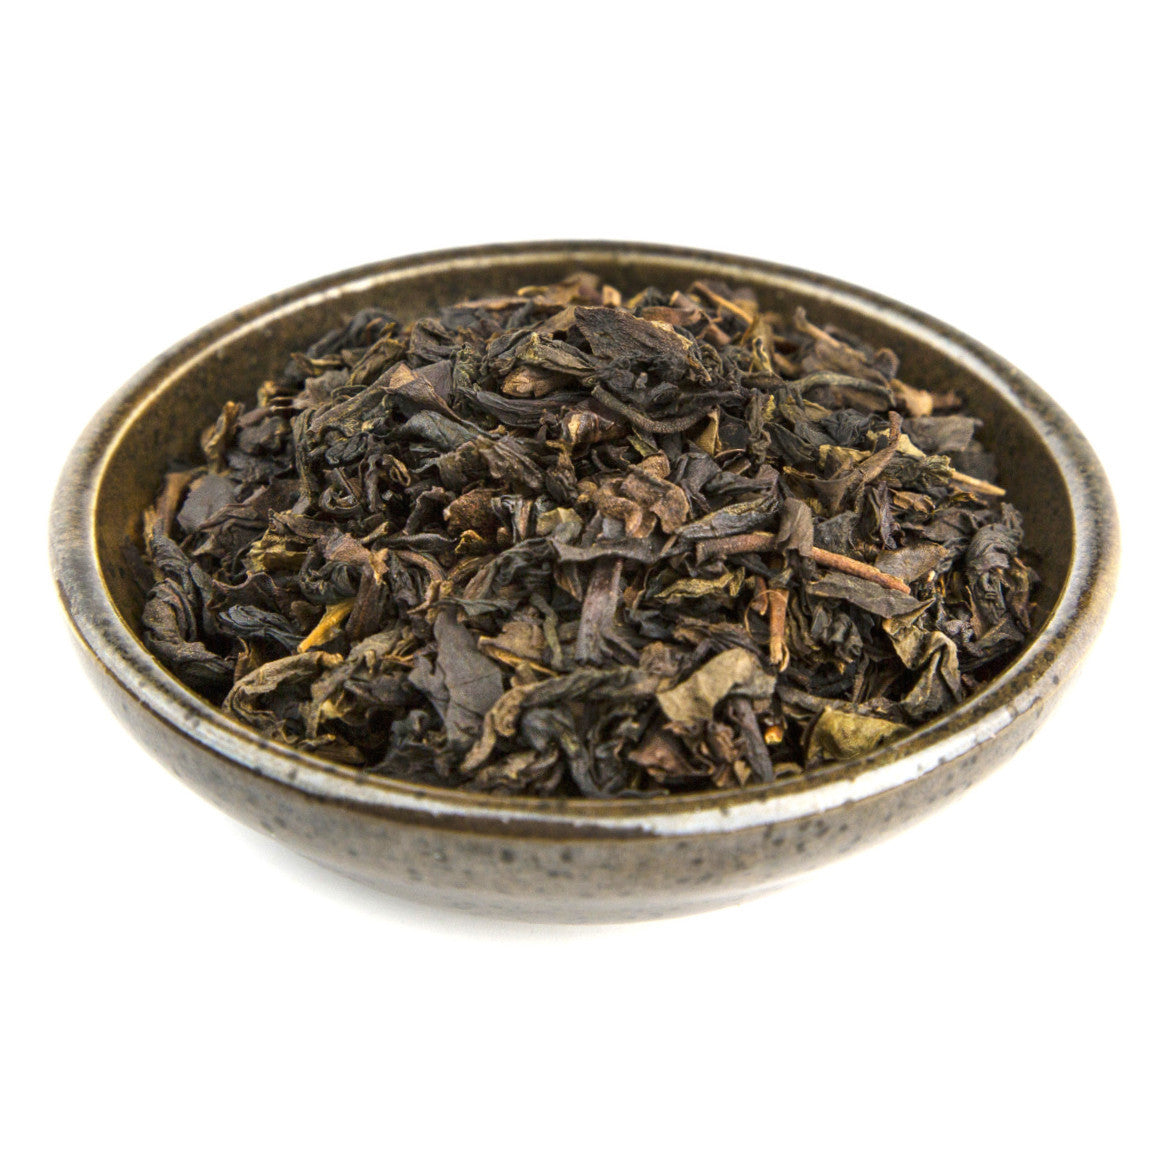 Wedding Cake Tea - Tea - Red Stick Spice Company